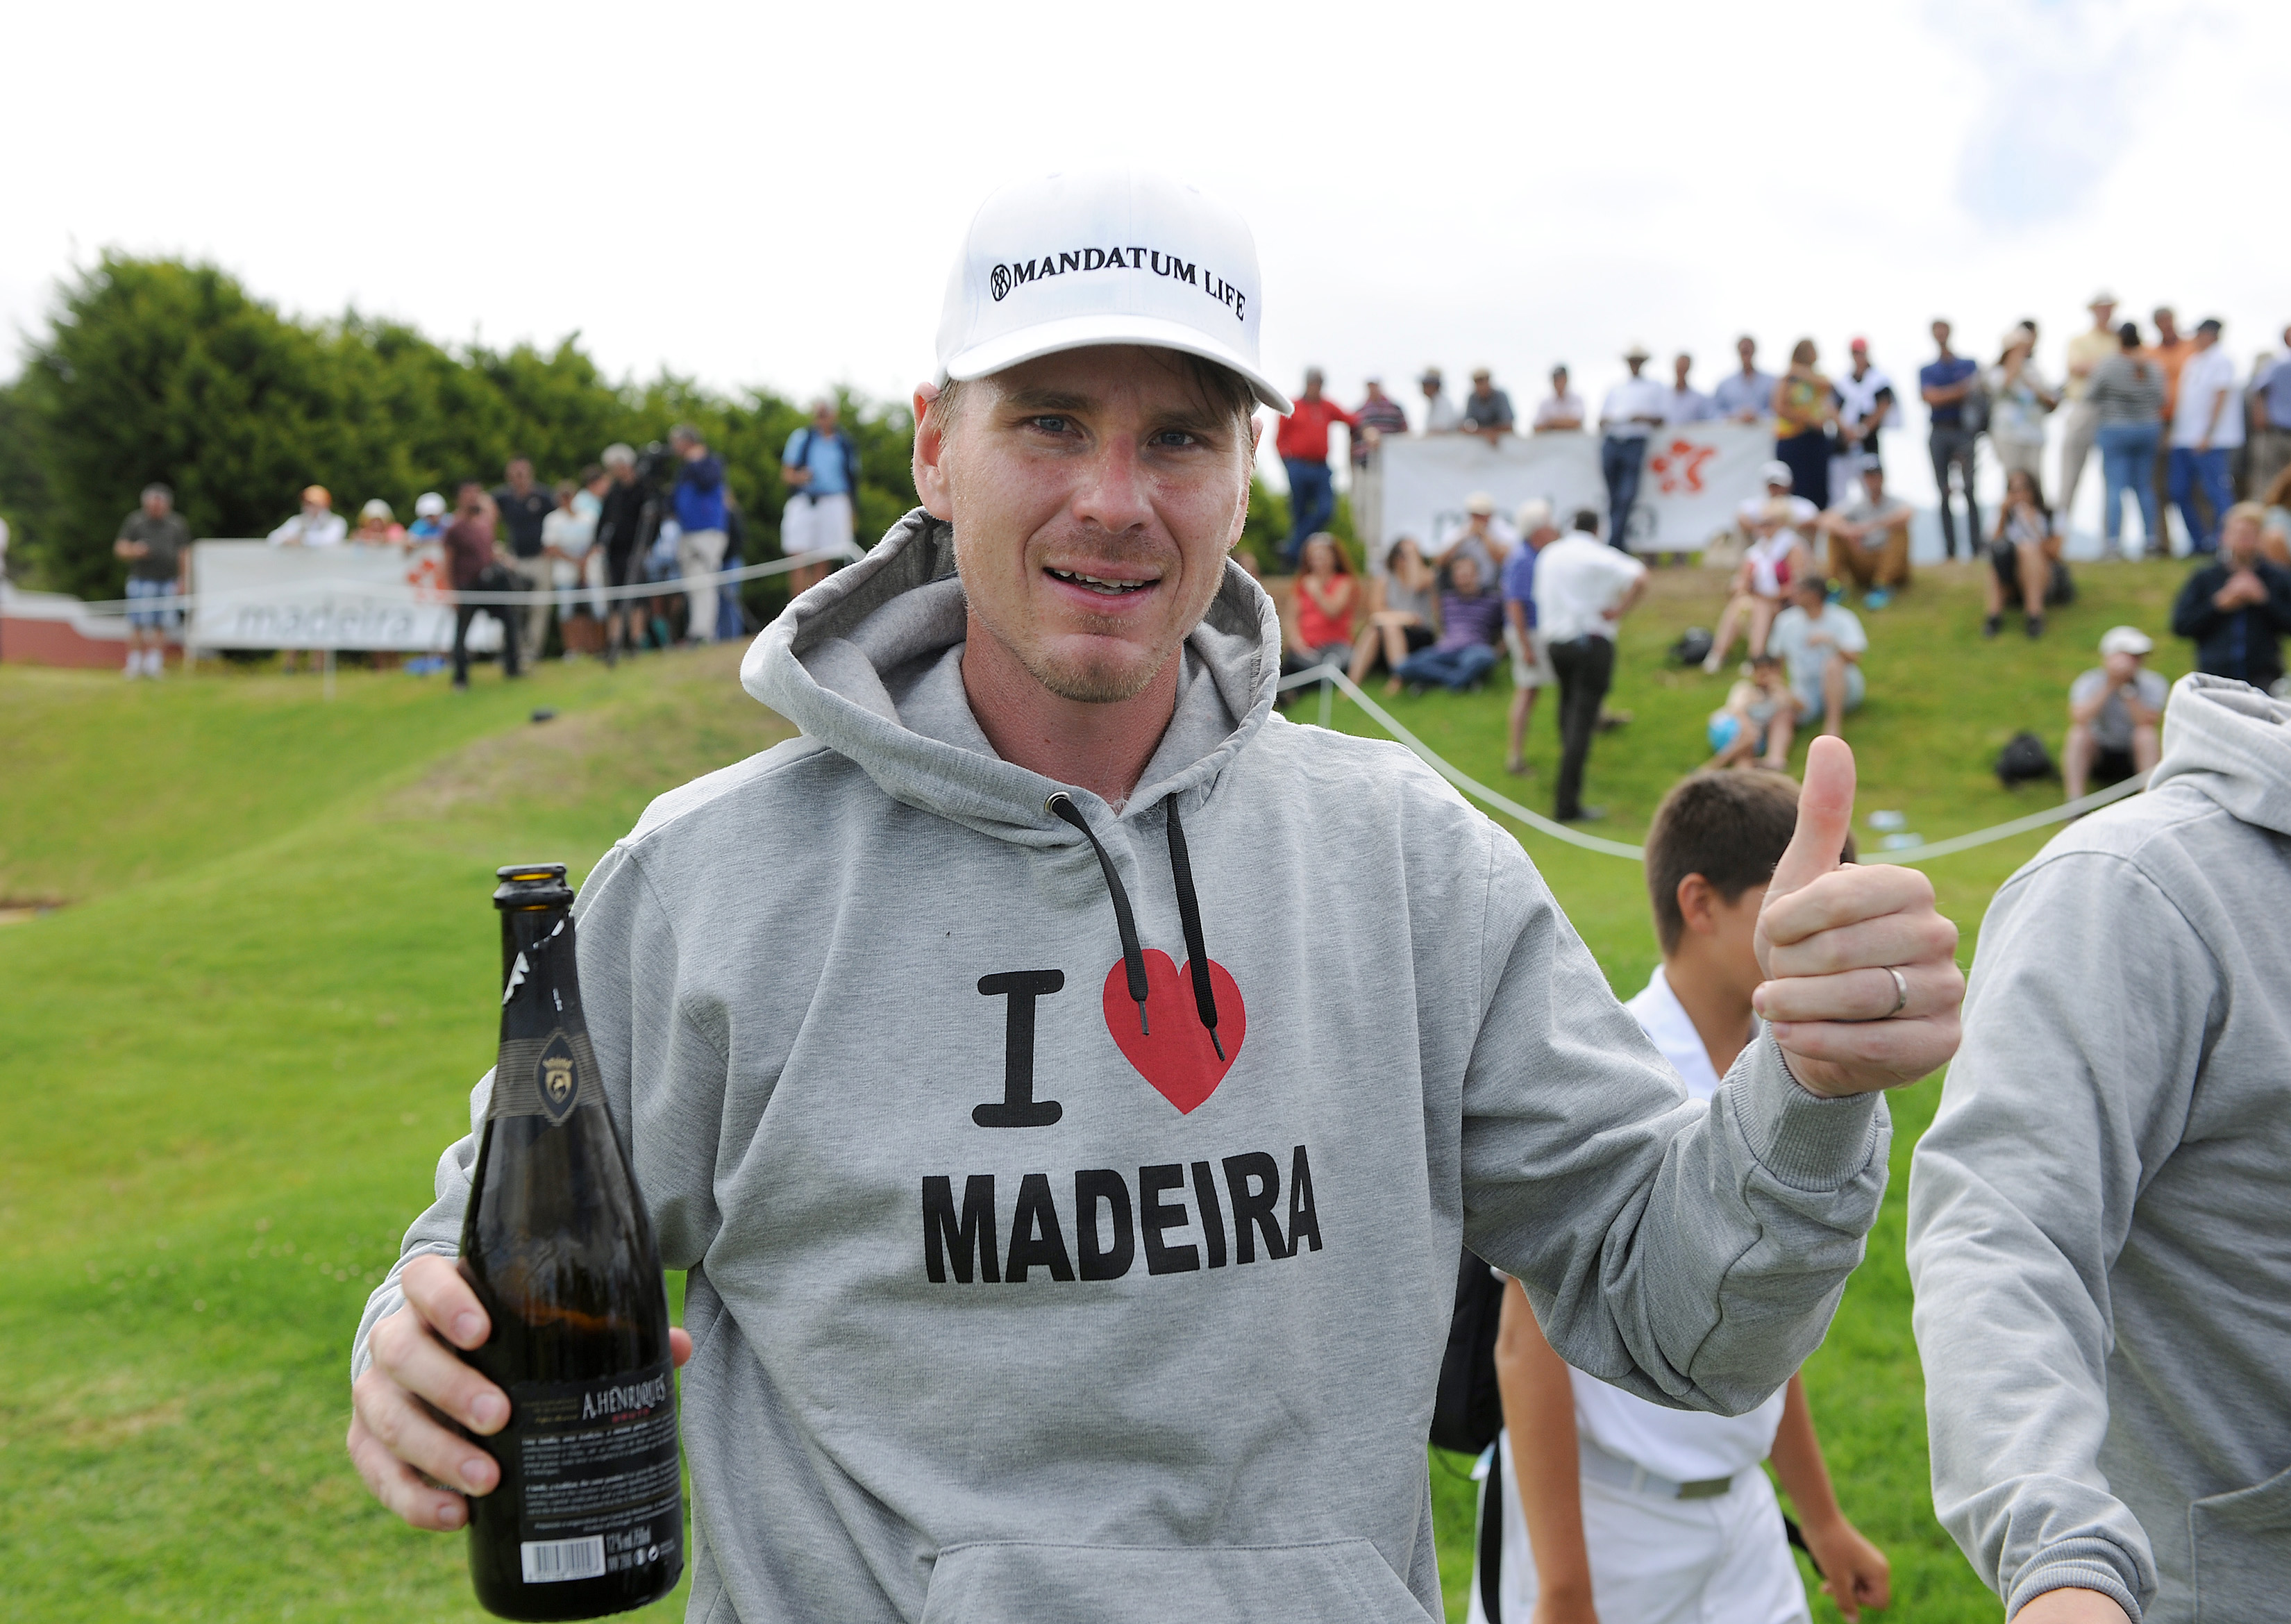 Finland's Roope Kakko celebrates after winning the Madeira Islands Golf Open at the Santo da Serra golf course in the island of Madeira, Portugal, Sunday, Aug. 2 2015. Kakko finished with a 24 under par total of 264. (AP Photo/Helder Santos)